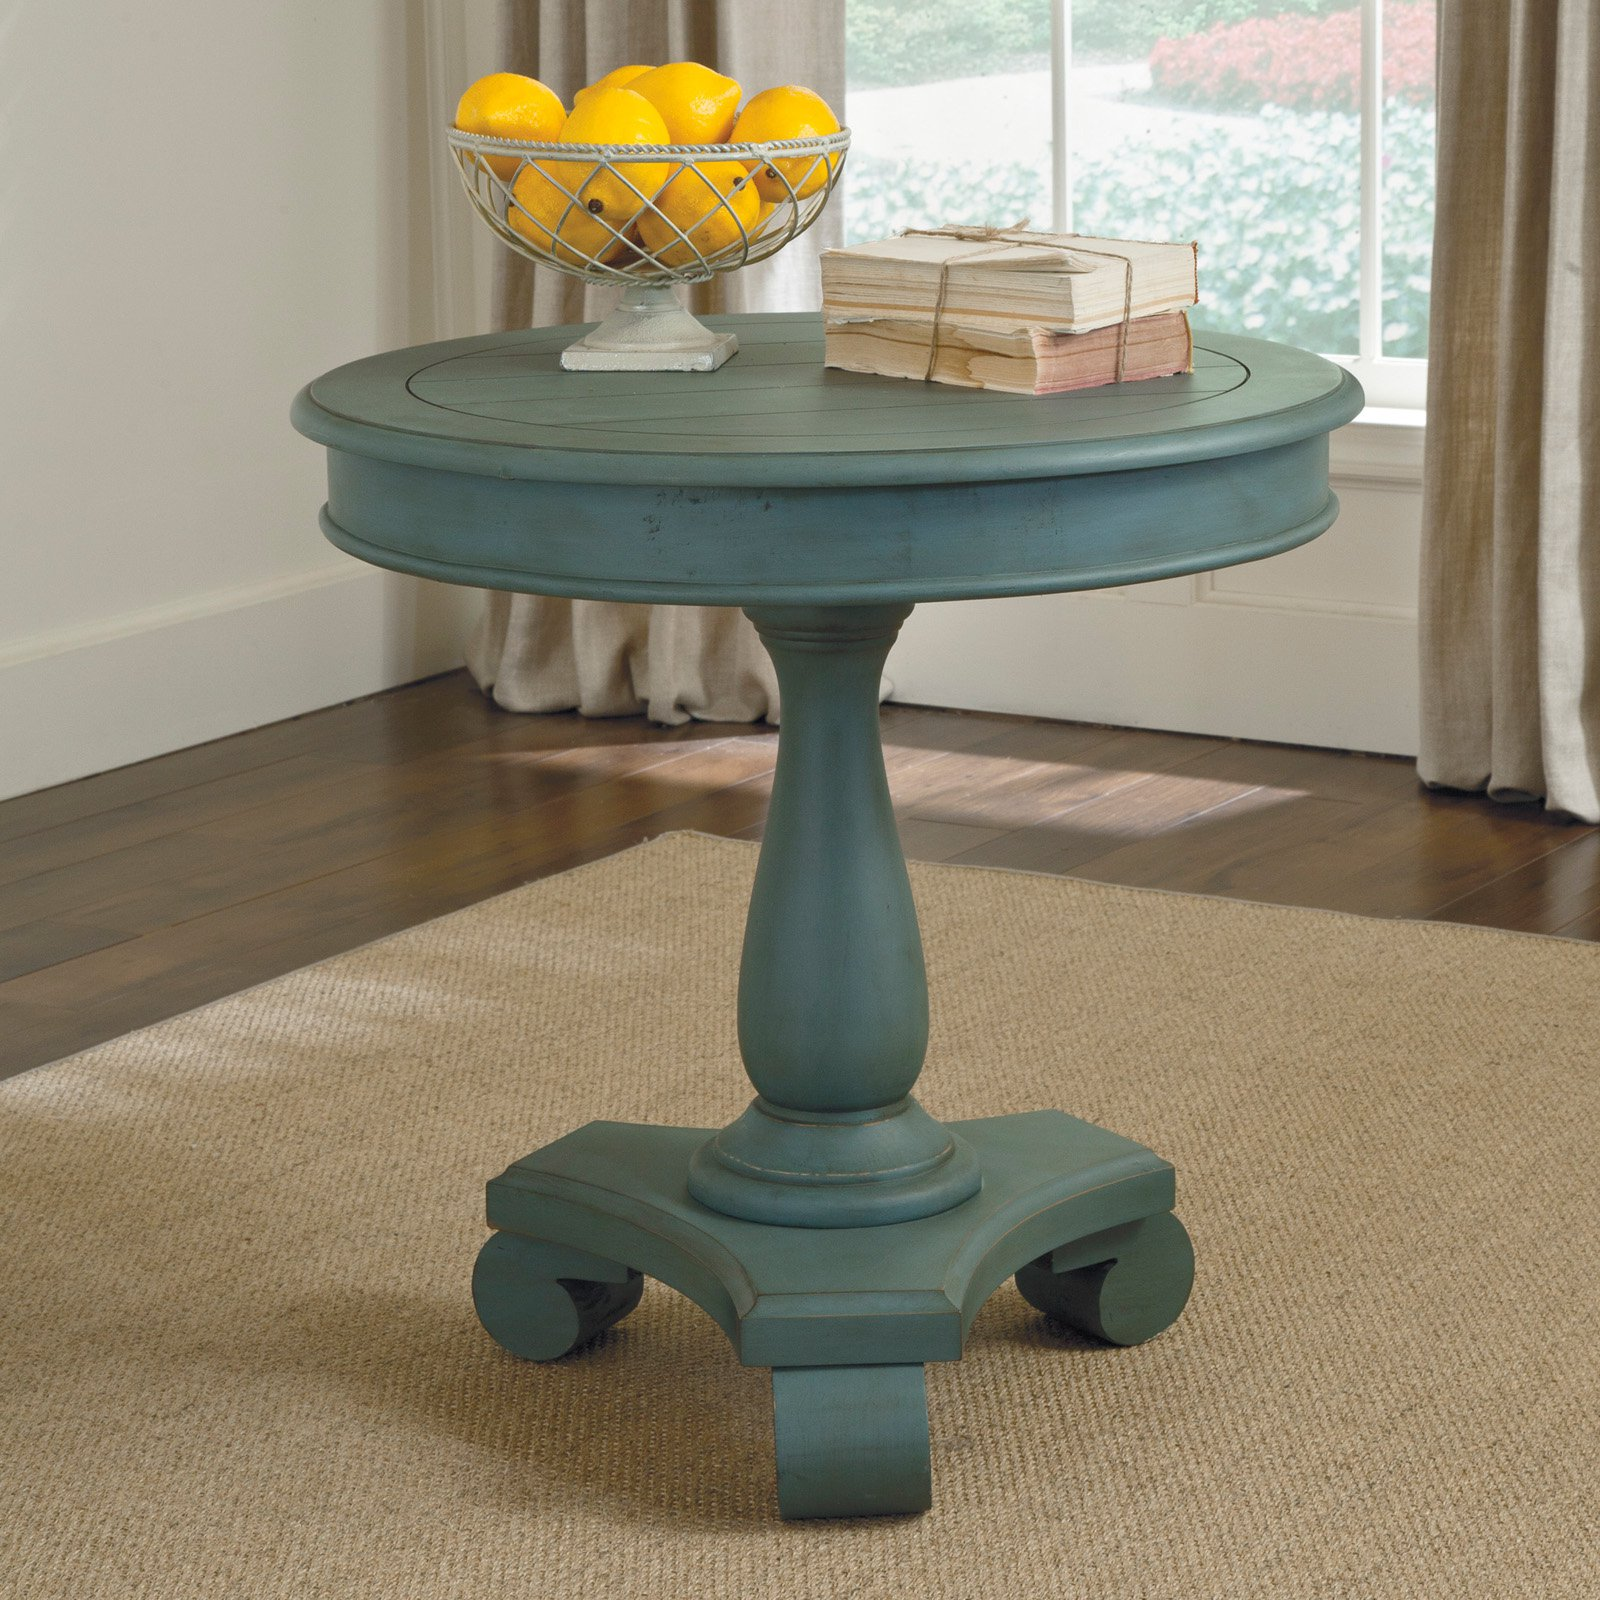 signature design ashley cottage accents blue round accent table aqua gold mirrored nightstand bright colored coffee inch black decor contemporary chandeliers elegant dining room